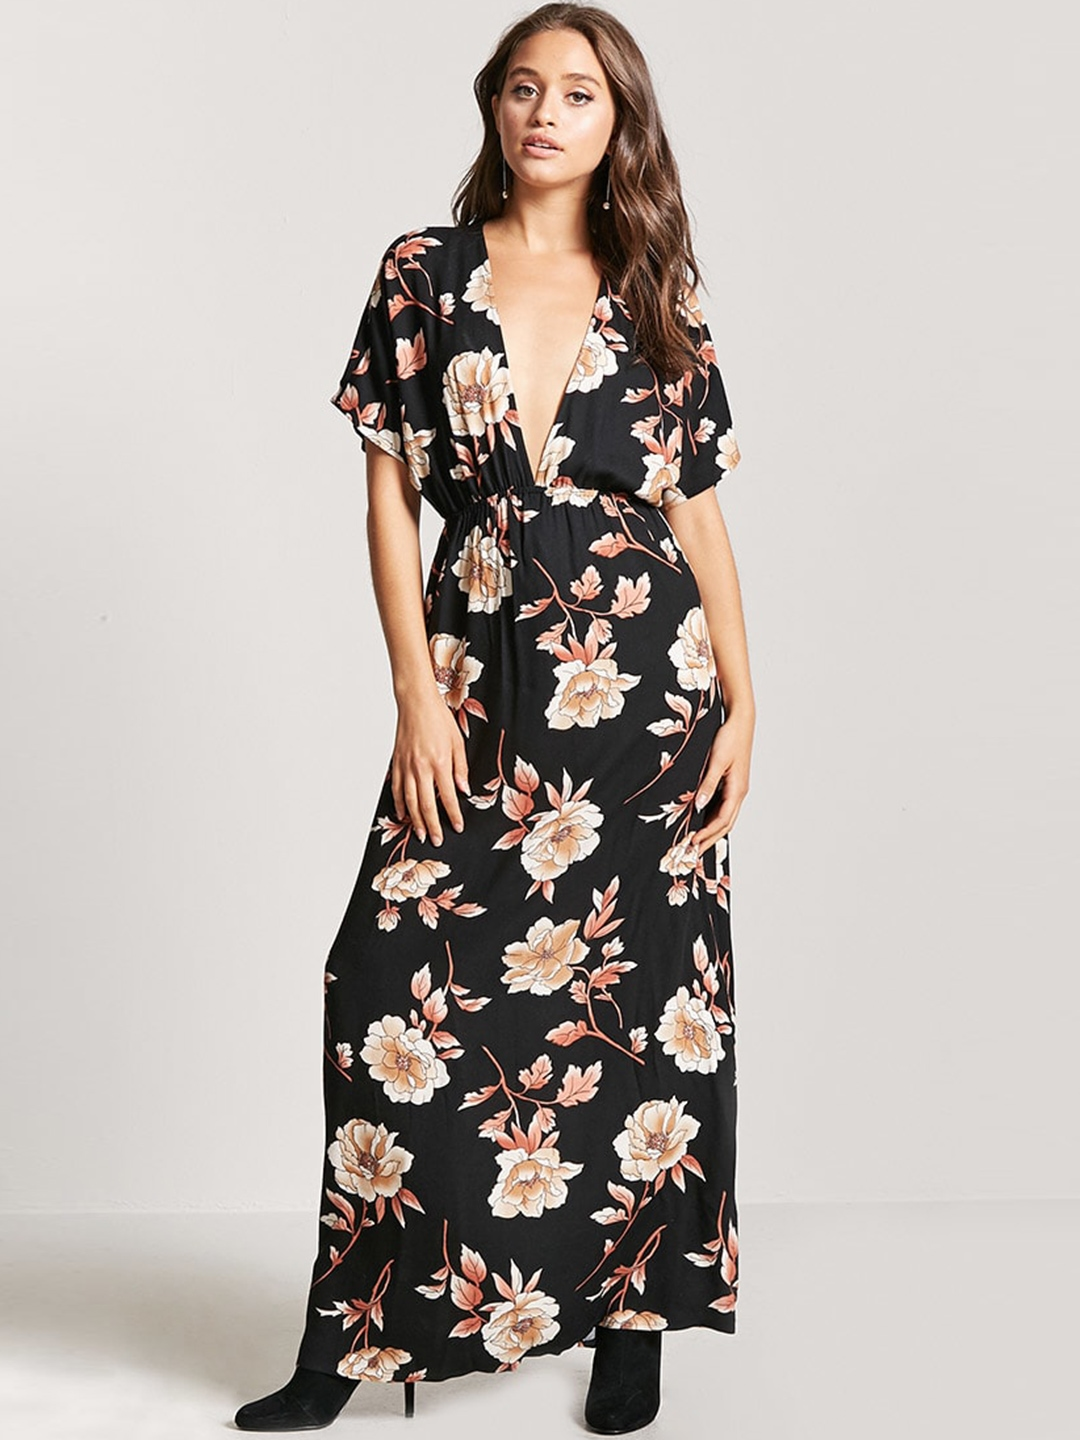 b053c893131 Buy FOREVER 21 Women Black Floral Printed A Line Dress - Dresses for ...